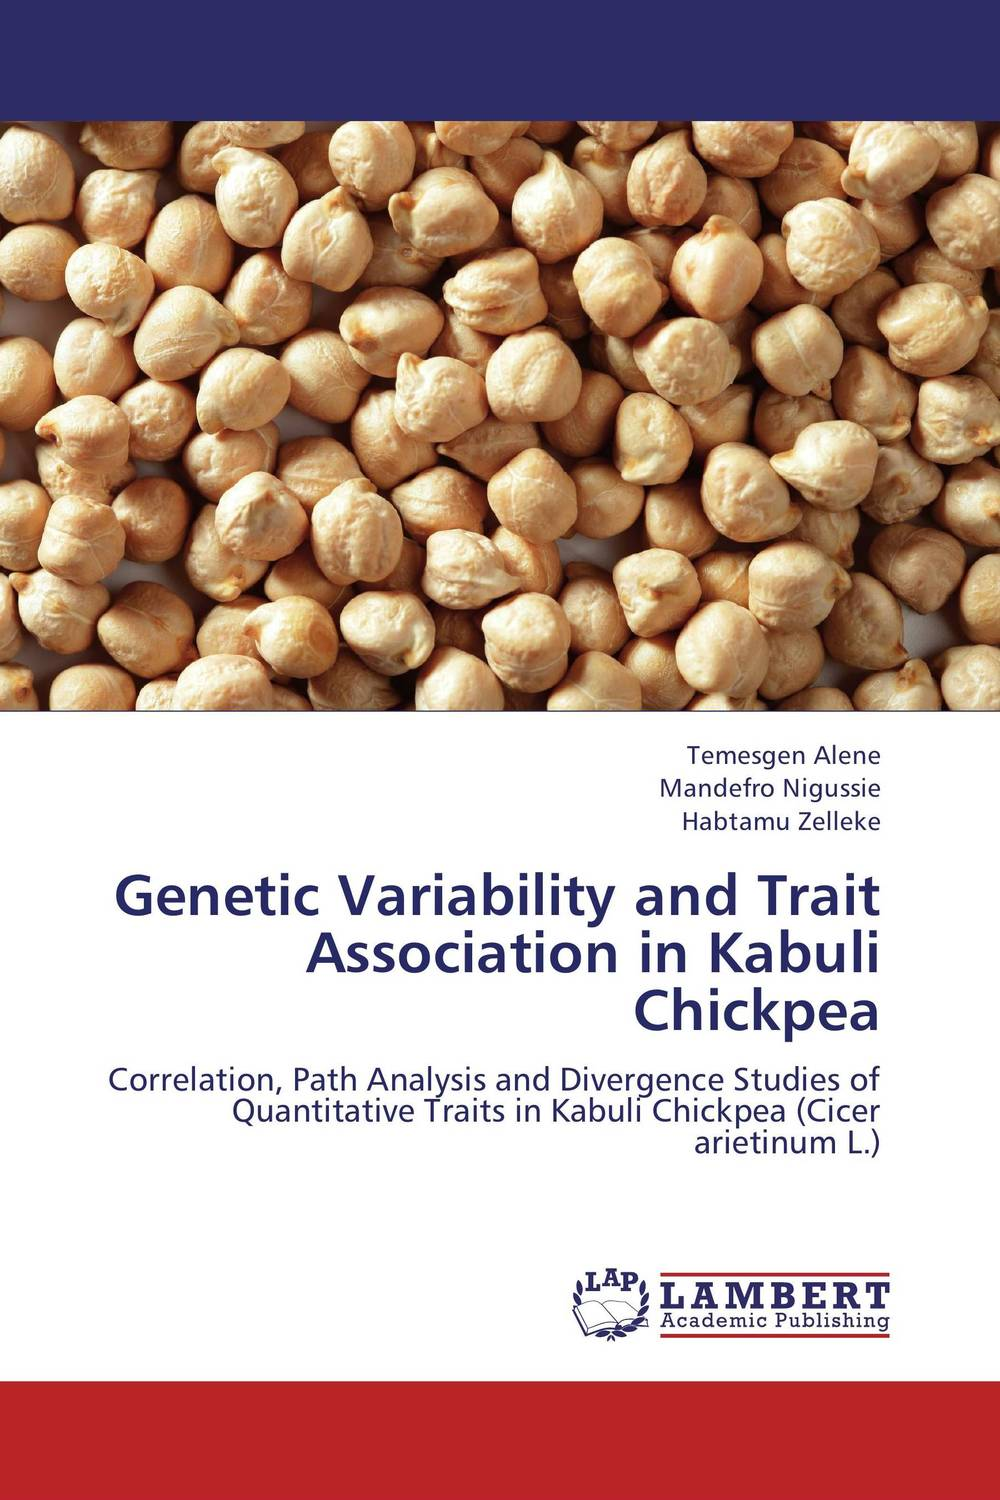 Genetic Variability and Trait Association in Kabuli Chickpea mukund shiragur d p kumar and venkat rao chrysanthemum genetic divergence